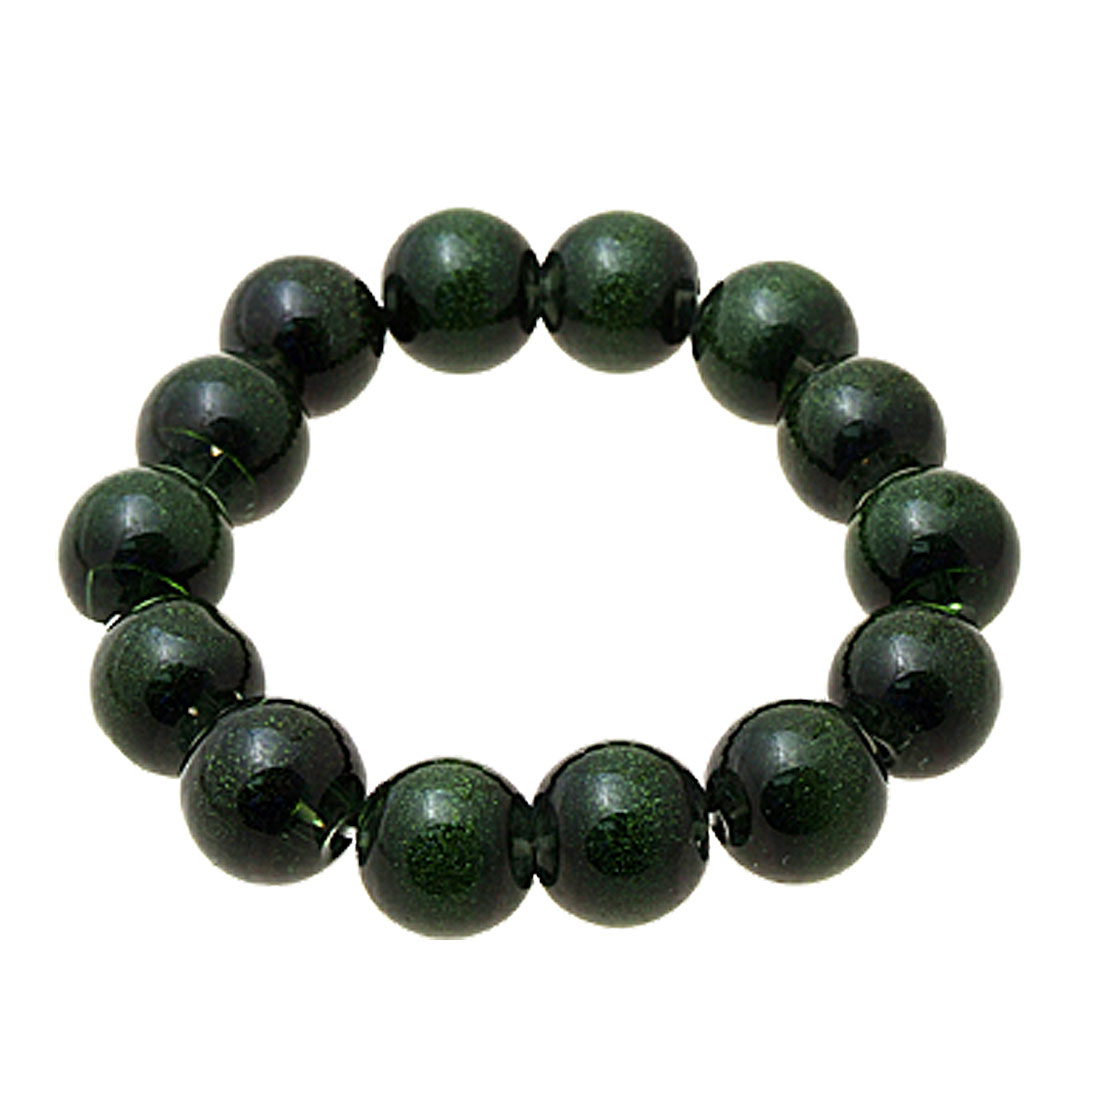 Hippi Fashion Decorative Green Beads Bracelet for Summer